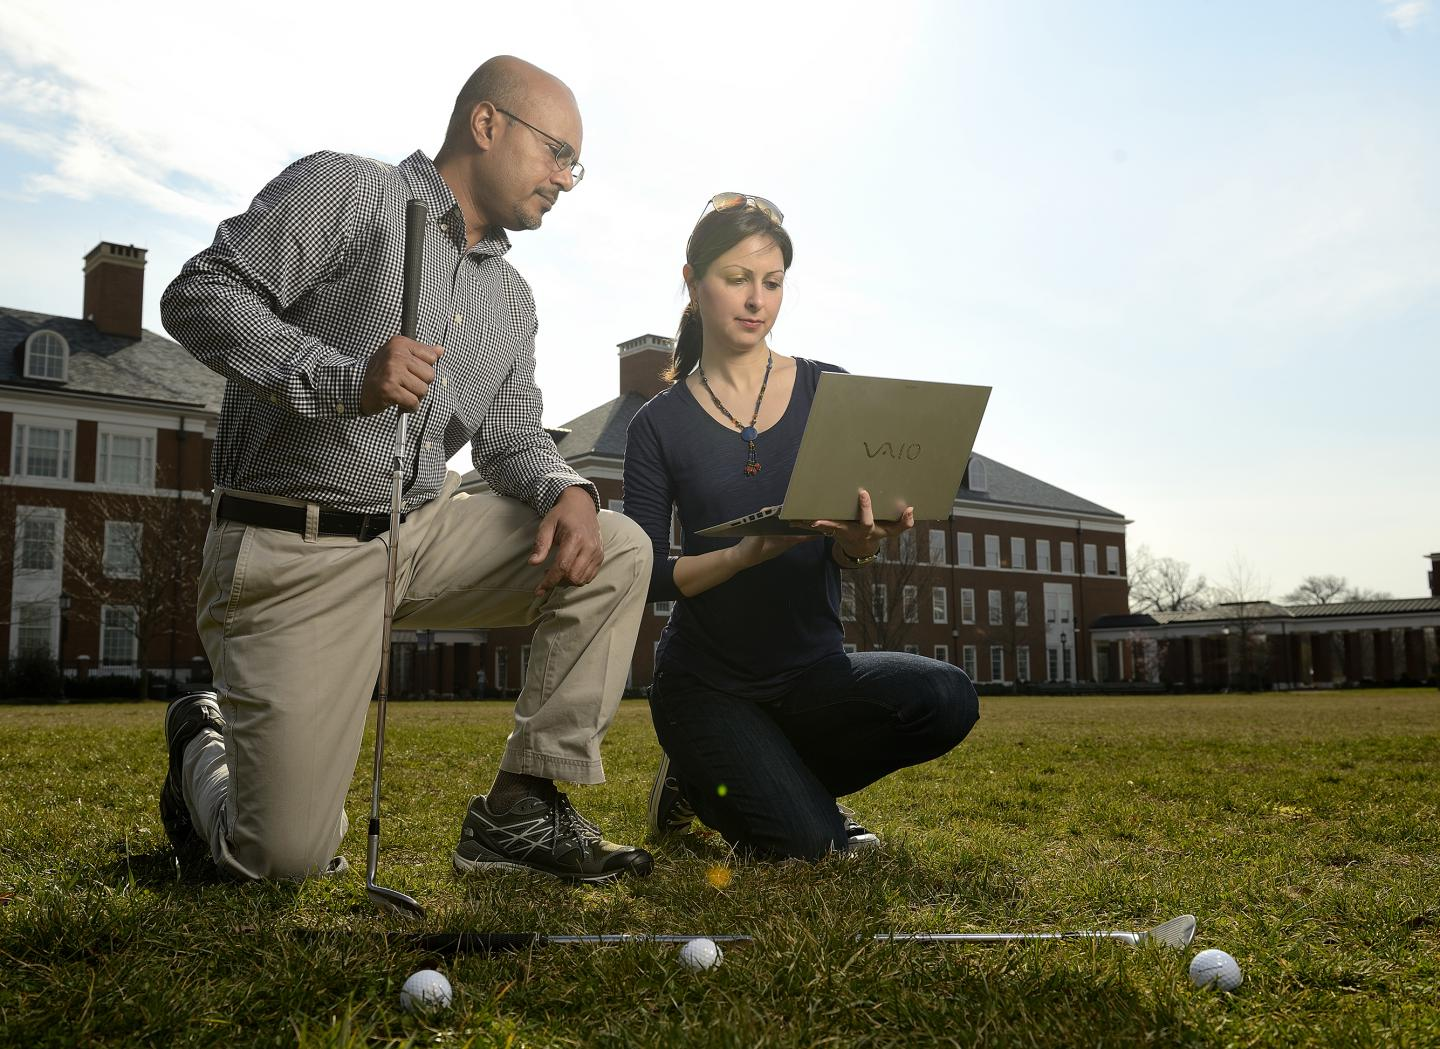 Rajat Mittal, left, a Johns Hopkins mechanical engineering professor, and Neda Yaghoobian, a visiting postdoctoral scholar, devised a computer simulation to determine how wind conditions affect the of trajectory of the ball.